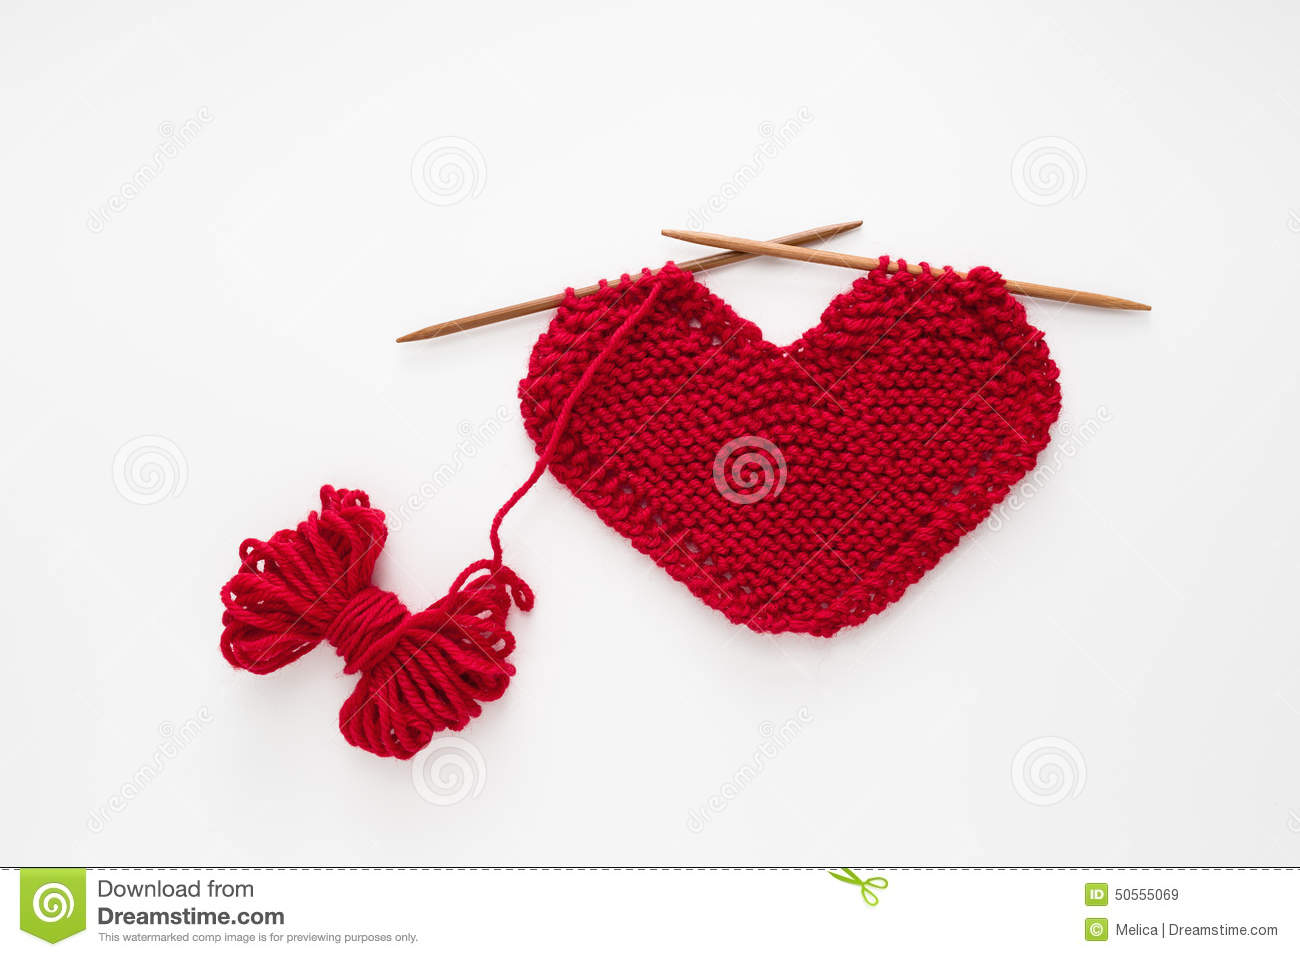 Love Knitting Stock Photo - Image: 50555069